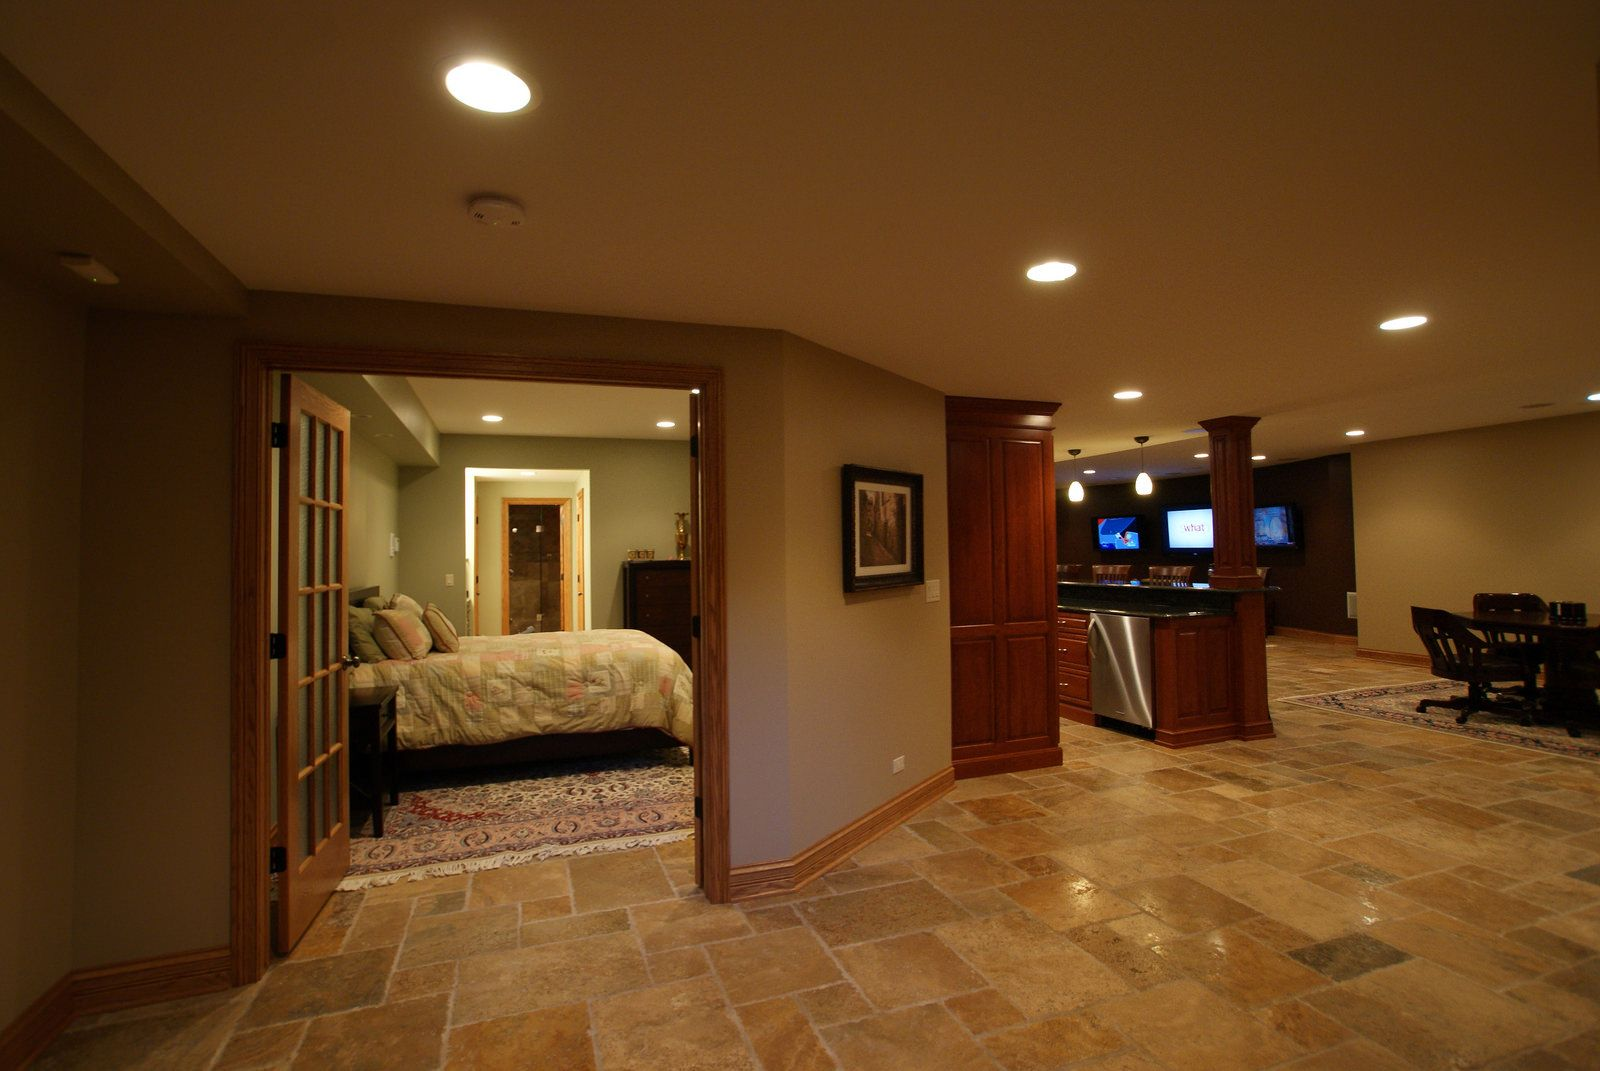 Remodeling Basement Ideas Magnificent Amazing Marietta Basement Remodels Room Additions Georgia Also Design Inspiration